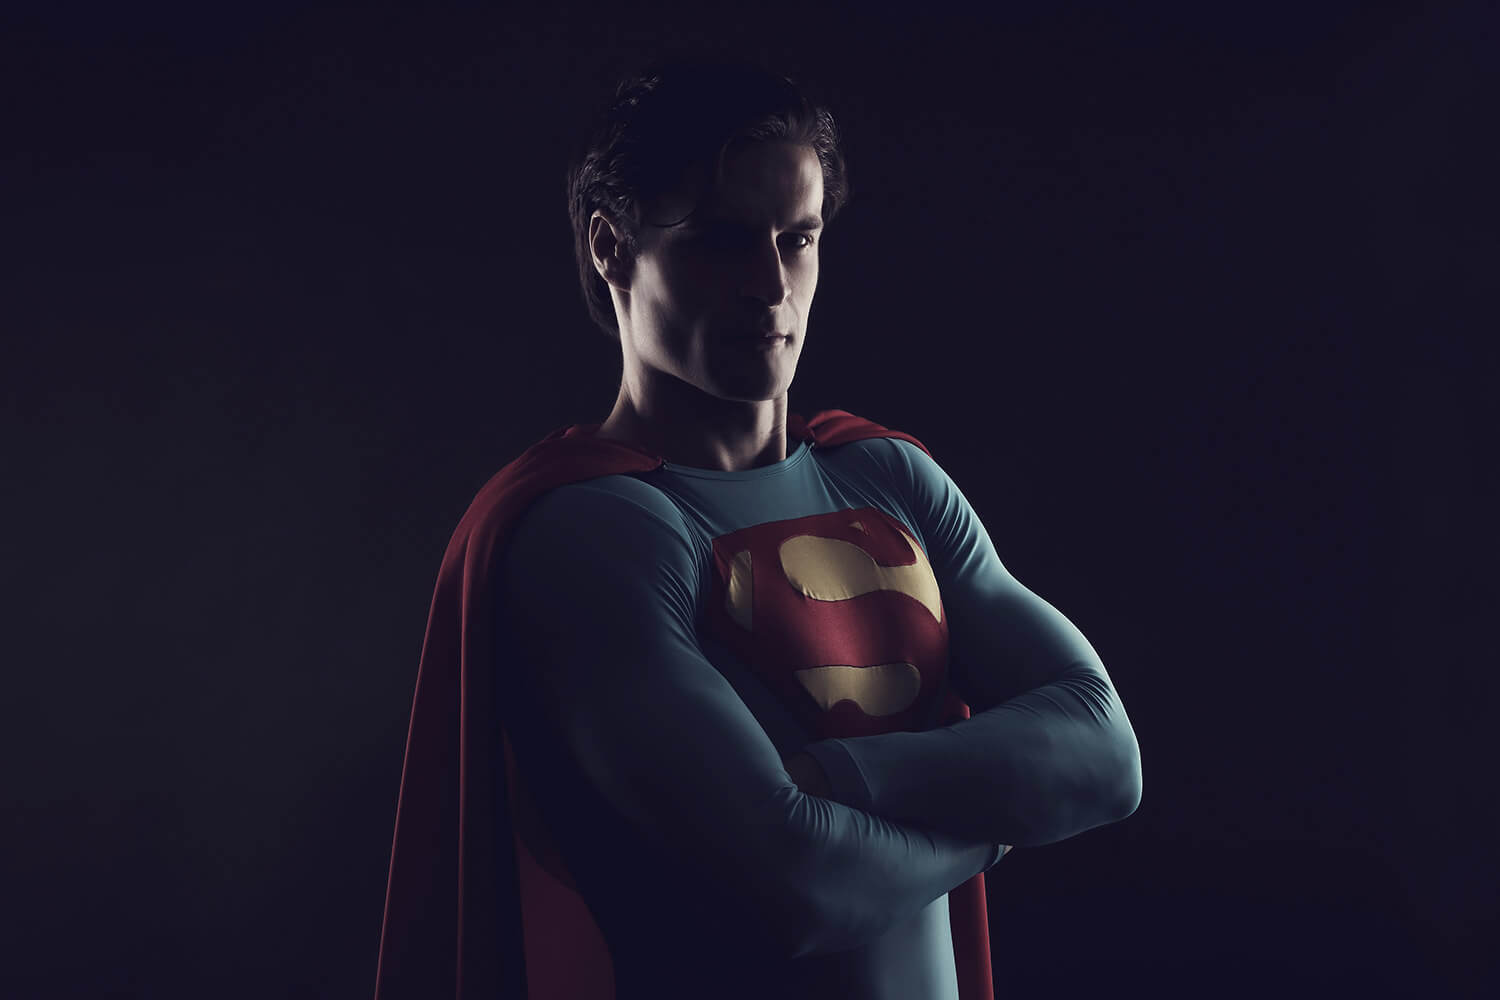 male portrait in a Superman costume and with folded arms on a black background, with light from the side